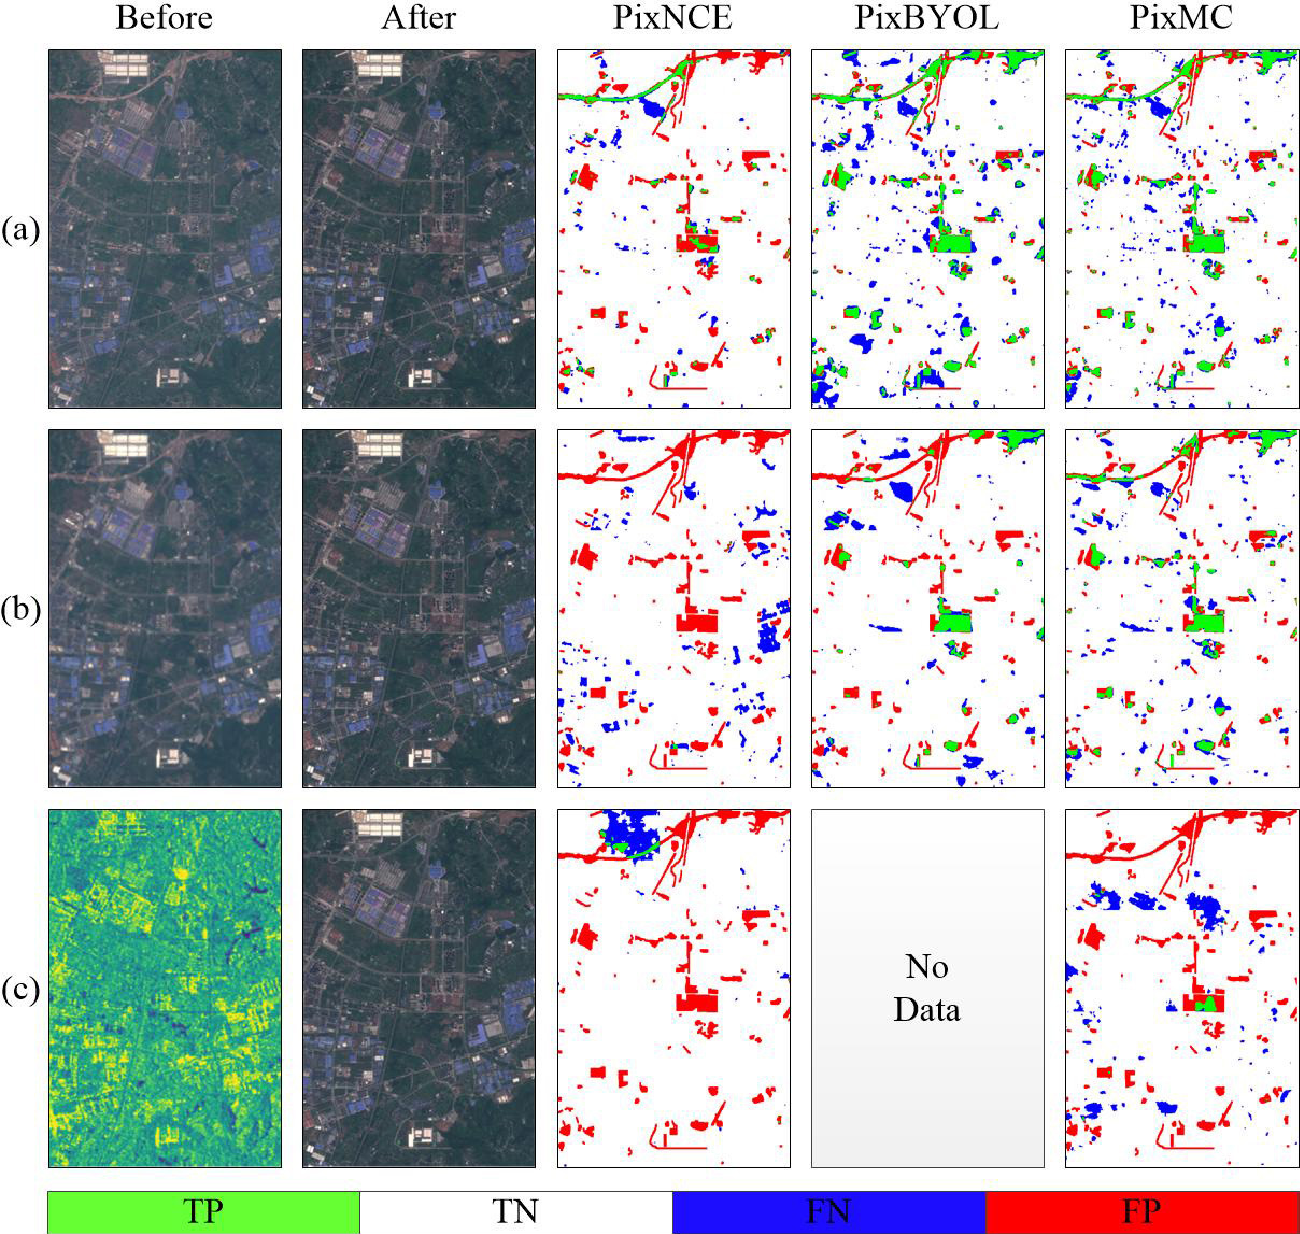 Figure 2 for Multi-view Contrastive Coding of Remote Sensing Images at Pixel-level